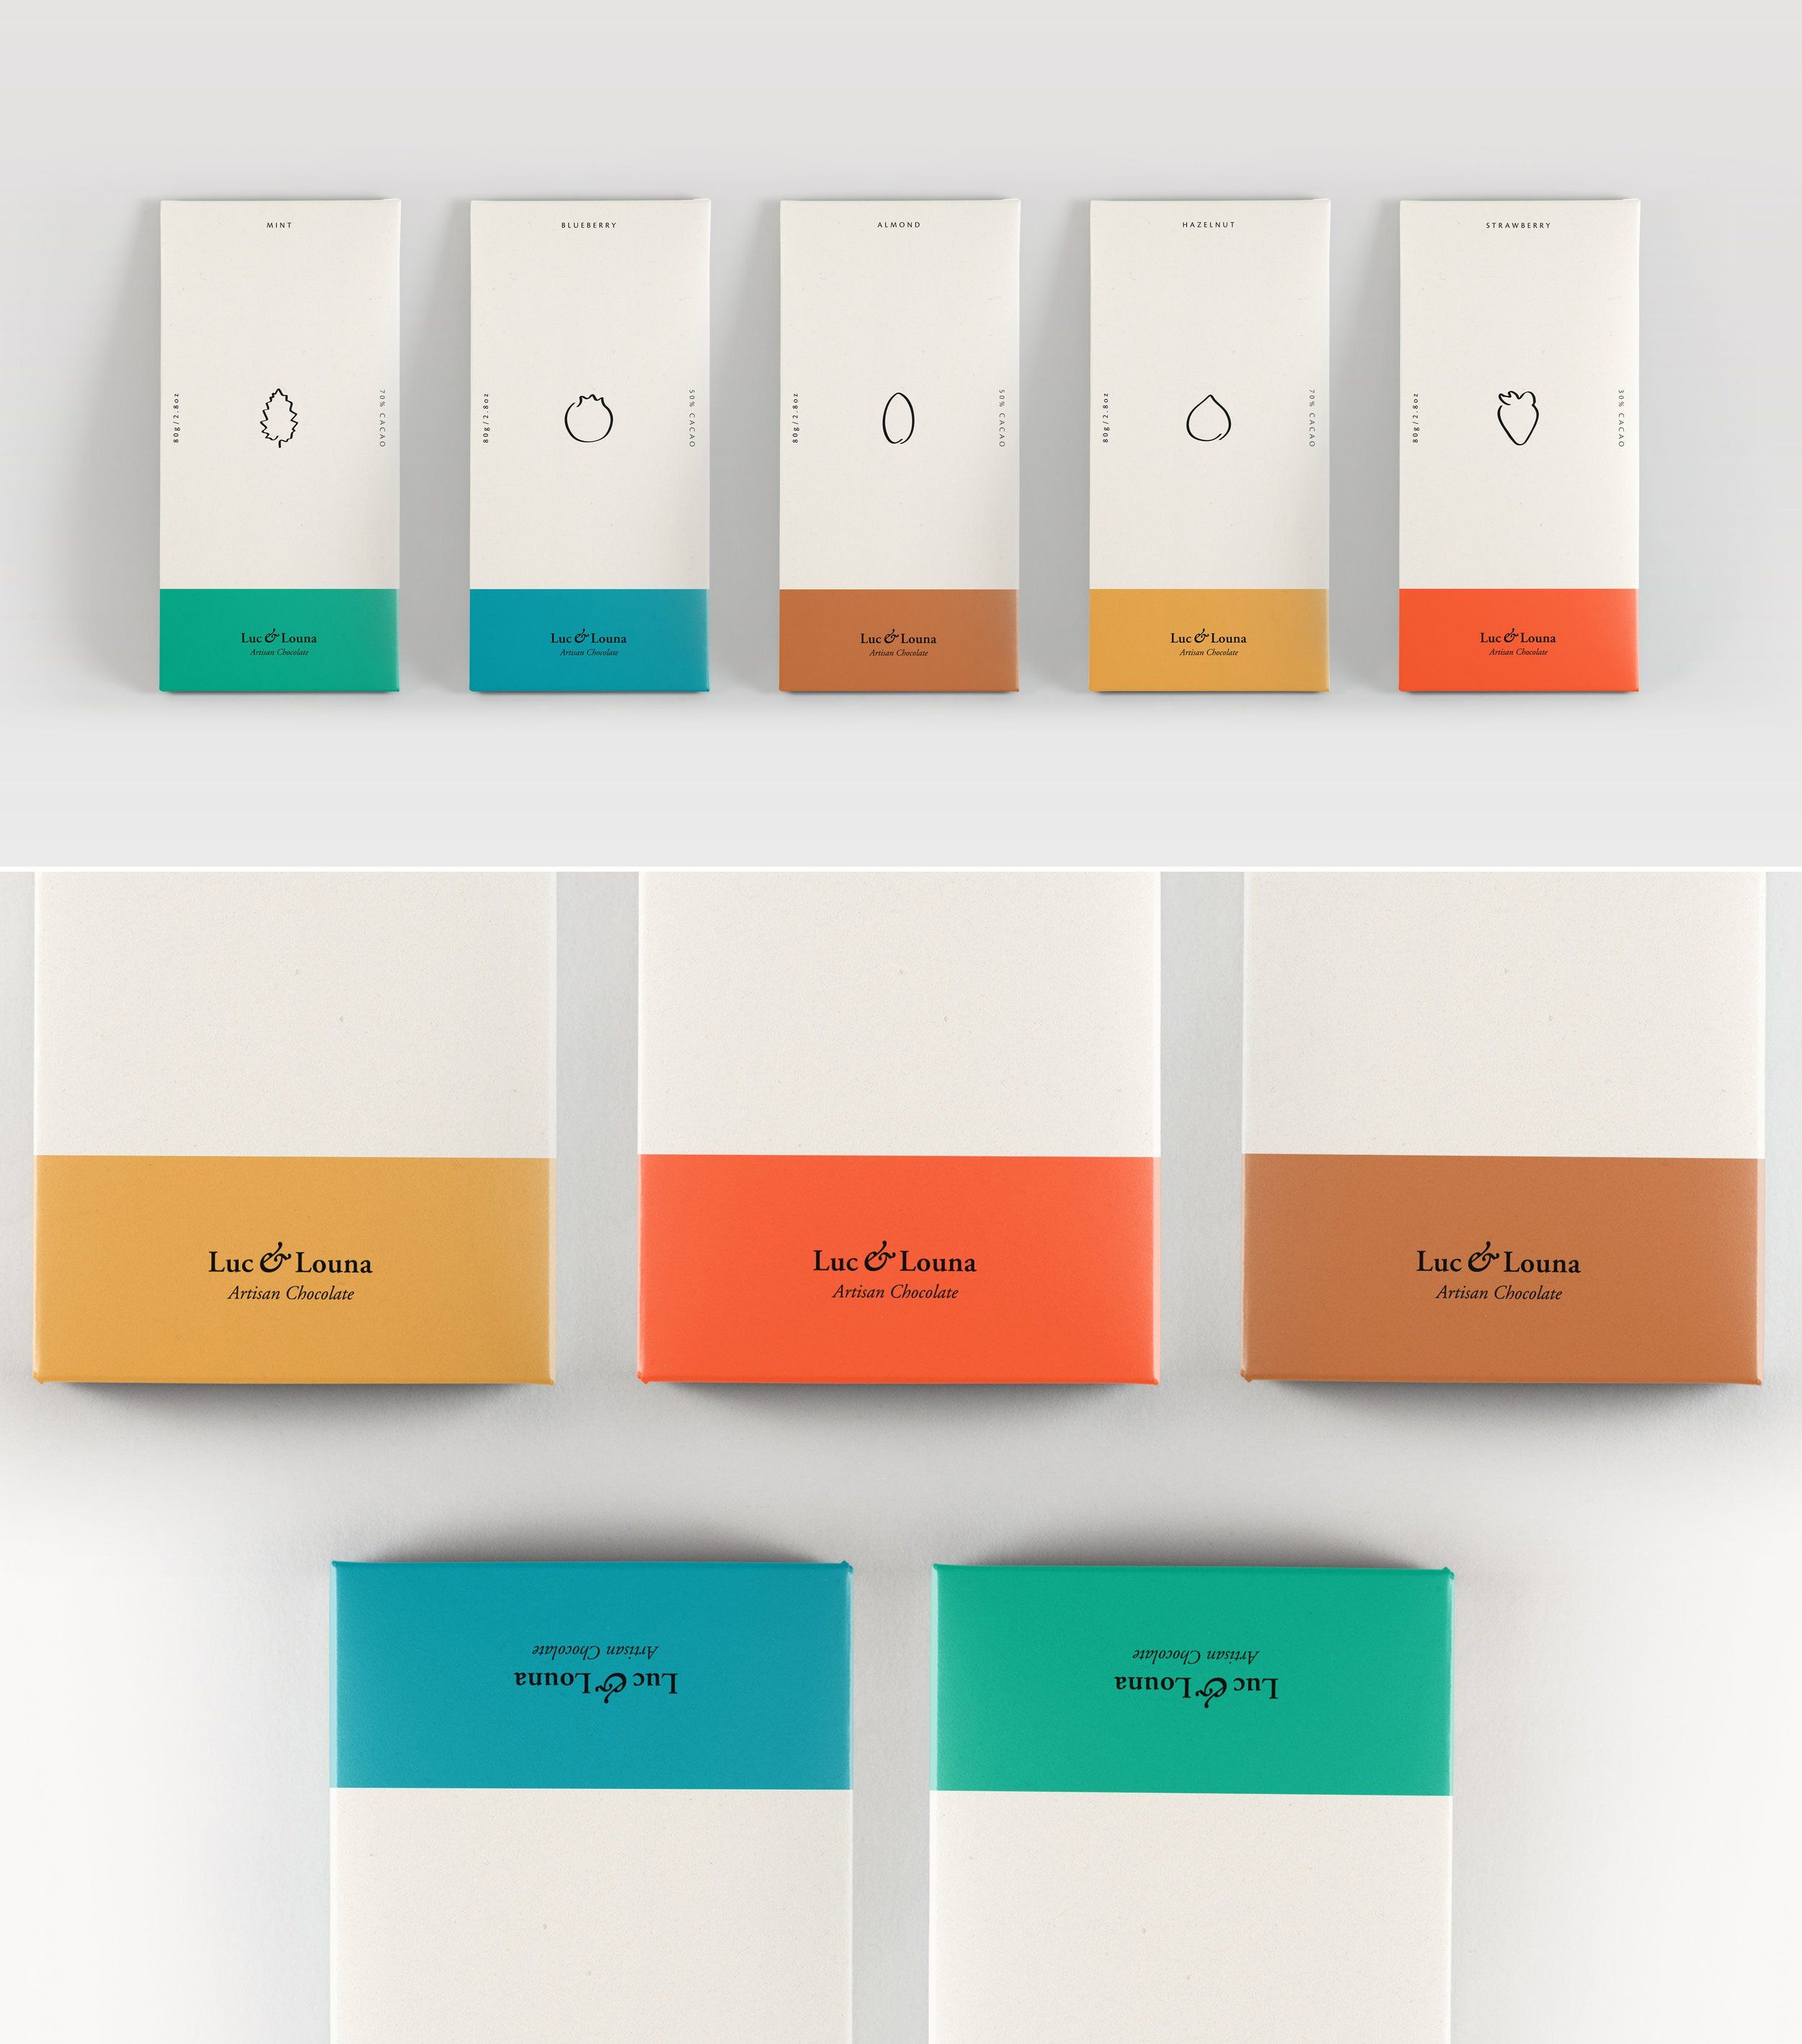 Minimal Graphic Design And Packaging